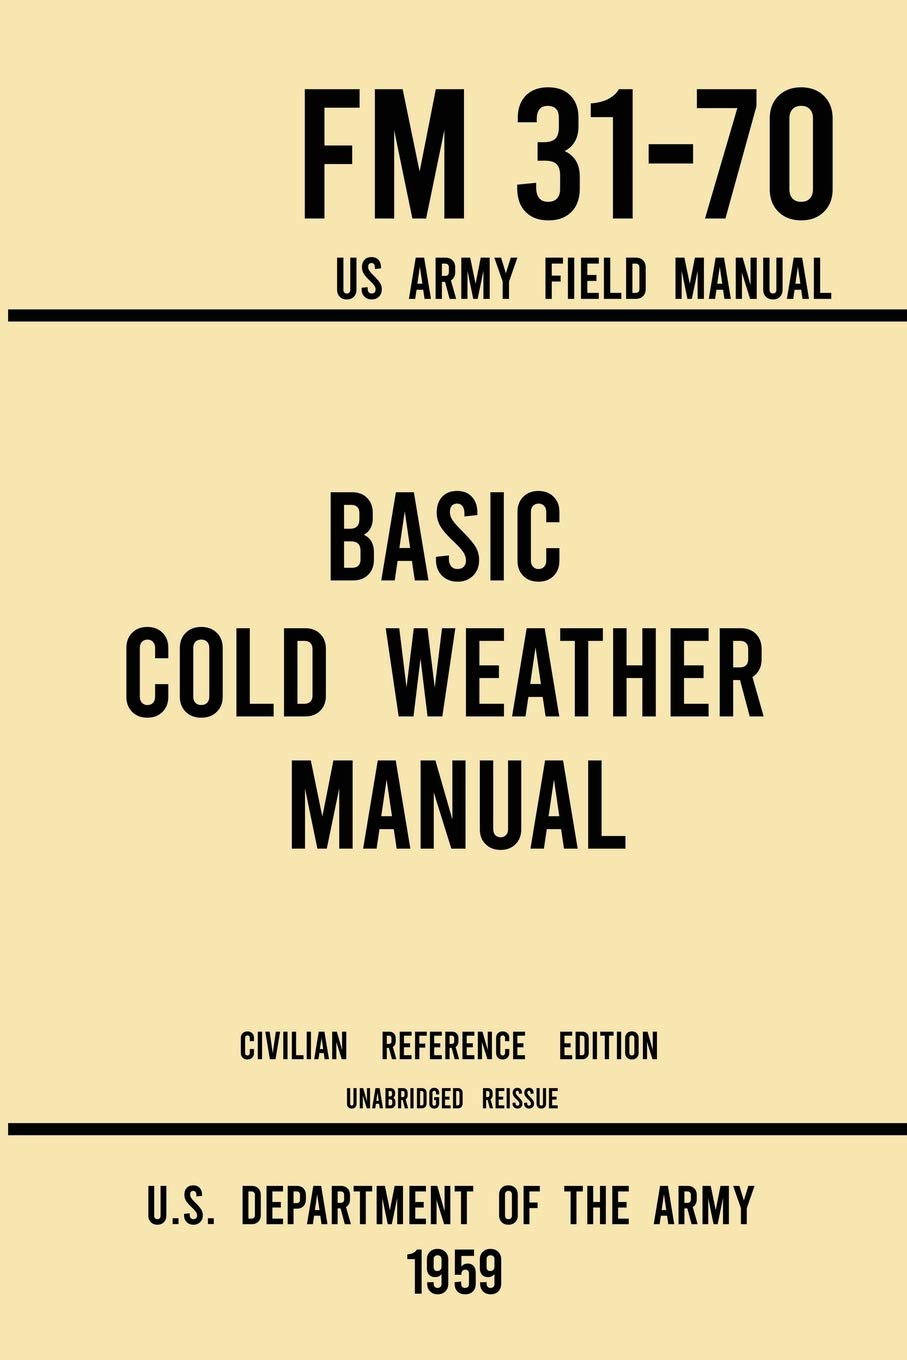 Basic Cold Weather Manual - FM 31-70 US Army Field Manual (1959 Civilian Reference Edition): Unabridged Handbook on Classic Ice and Snow Camping and ... Winter Outdoors (Military Outdoors Skills)